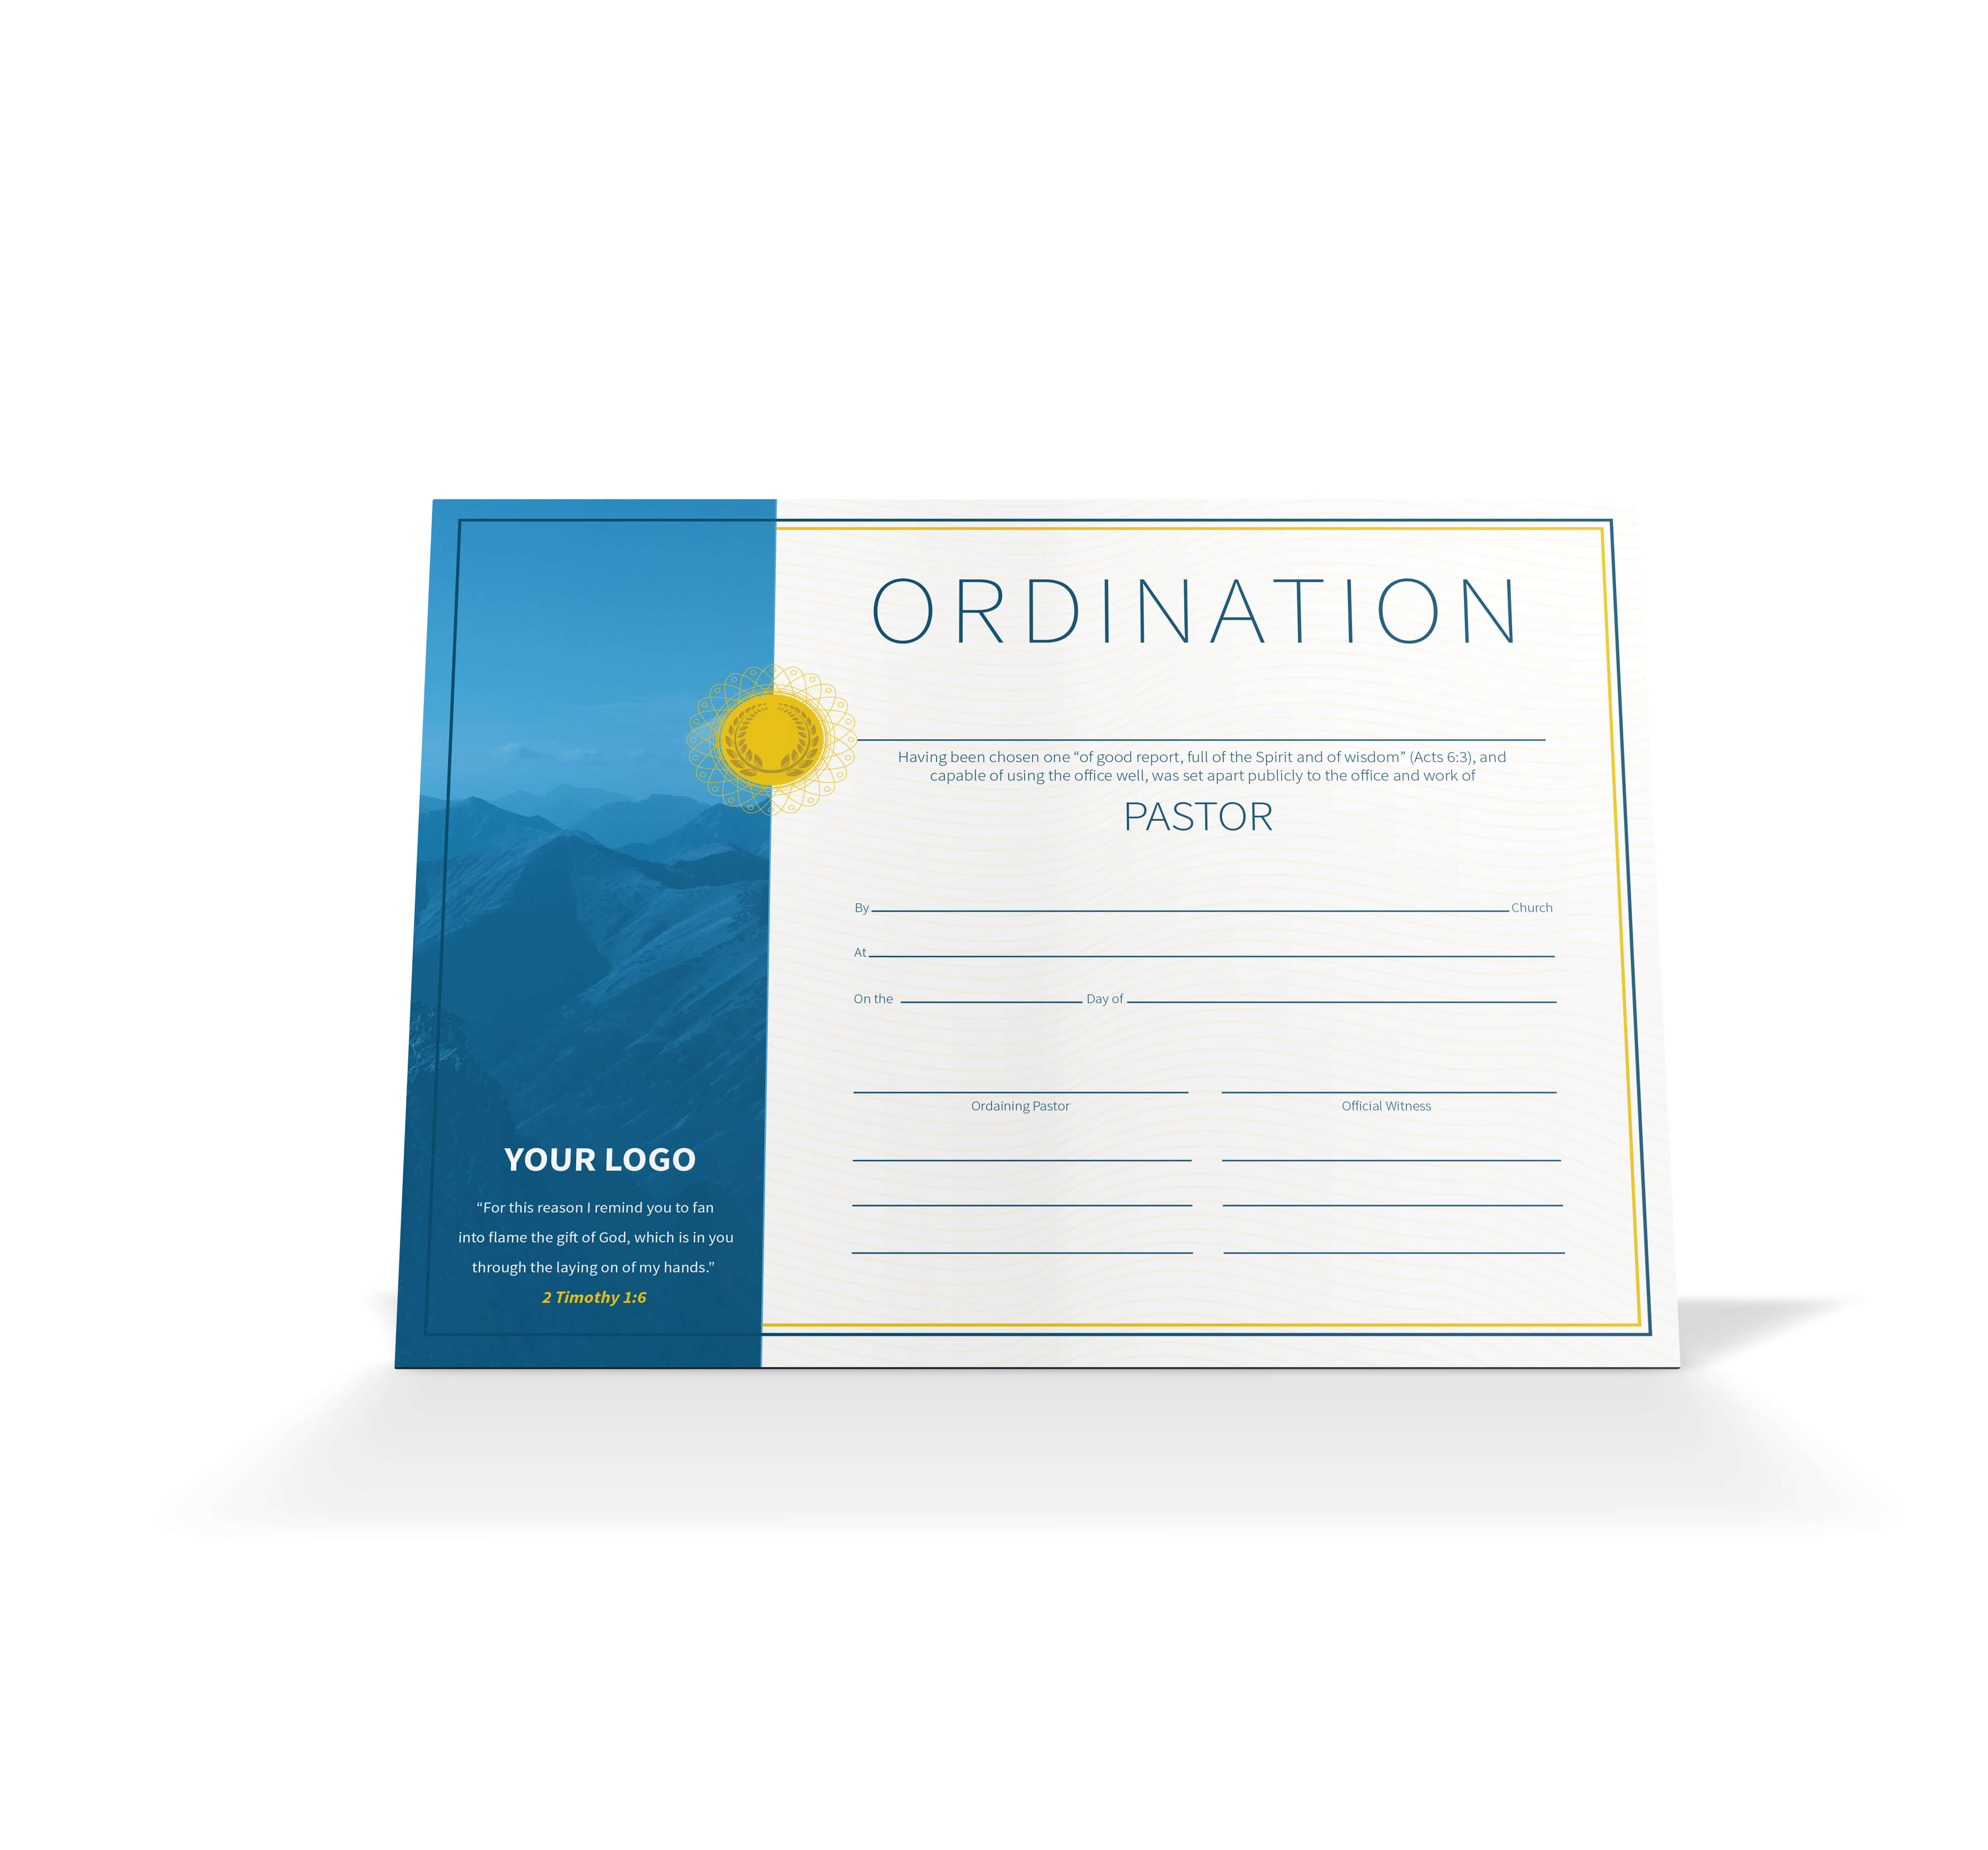 Pastor Ordination Certificate - Vineyard Digital Membership pertaining to Certificate Of Ordination Template